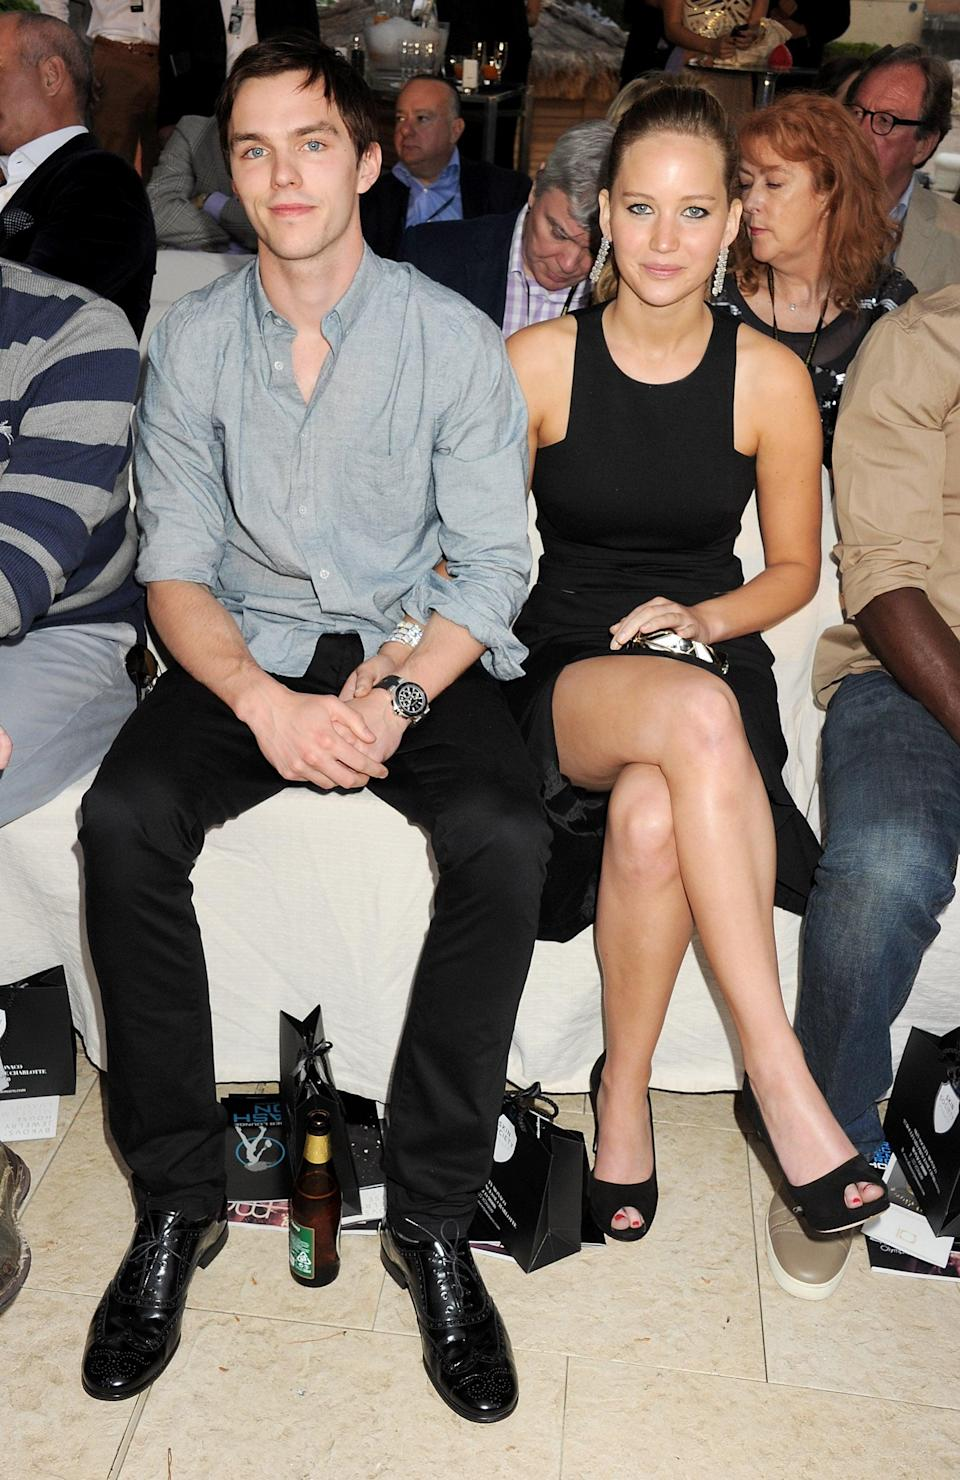 "<p>Jennifer and Nicholas got together on the set of <strong>X-Men: First Class</strong> in 2010, and dated on and off until 2014, right around the time when <strong>X-Men: Days of Future Past</strong> wrapped. Since then, the two have had to work together on <strong>X-Men: Apocalypse</strong>, which released in 2016, and <strong>Dark Phoenix</strong>, which came out in 2019. Luckily, their characters, Beast and Mystique, didn't have <em>too</em> many intimate scenes. </p> <p>During a January 2019 interview with <strong>Evening Standard</strong>, Nicholas said that <a href=""http://www.standard.co.uk/lifestyle/esmagazine/nicholas-hoult-fatherhood-acting-a4047041.html"" class=""link rapid-noclick-resp"" rel=""nofollow noopener"" target=""_blank"" data-ylk=""slk:working with Jennifer post-breakup wasn't at all weird"">working with Jennifer post-breakup wasn't at all weird</a>. ""It's pretty similar to <strong>Skins</strong>,"" he said, referring to the show he starred in at the beginning of his career. ""We're a big family. We've been doing those movies since we were 20 years old. As much as the<strong> Skins </strong>crowd grew up together, the <strong>X-Men</strong> crowd really grew up together. It's been a good eight, nine years making those movies. We've all got to get along. We've all got to have fun."" </p>"